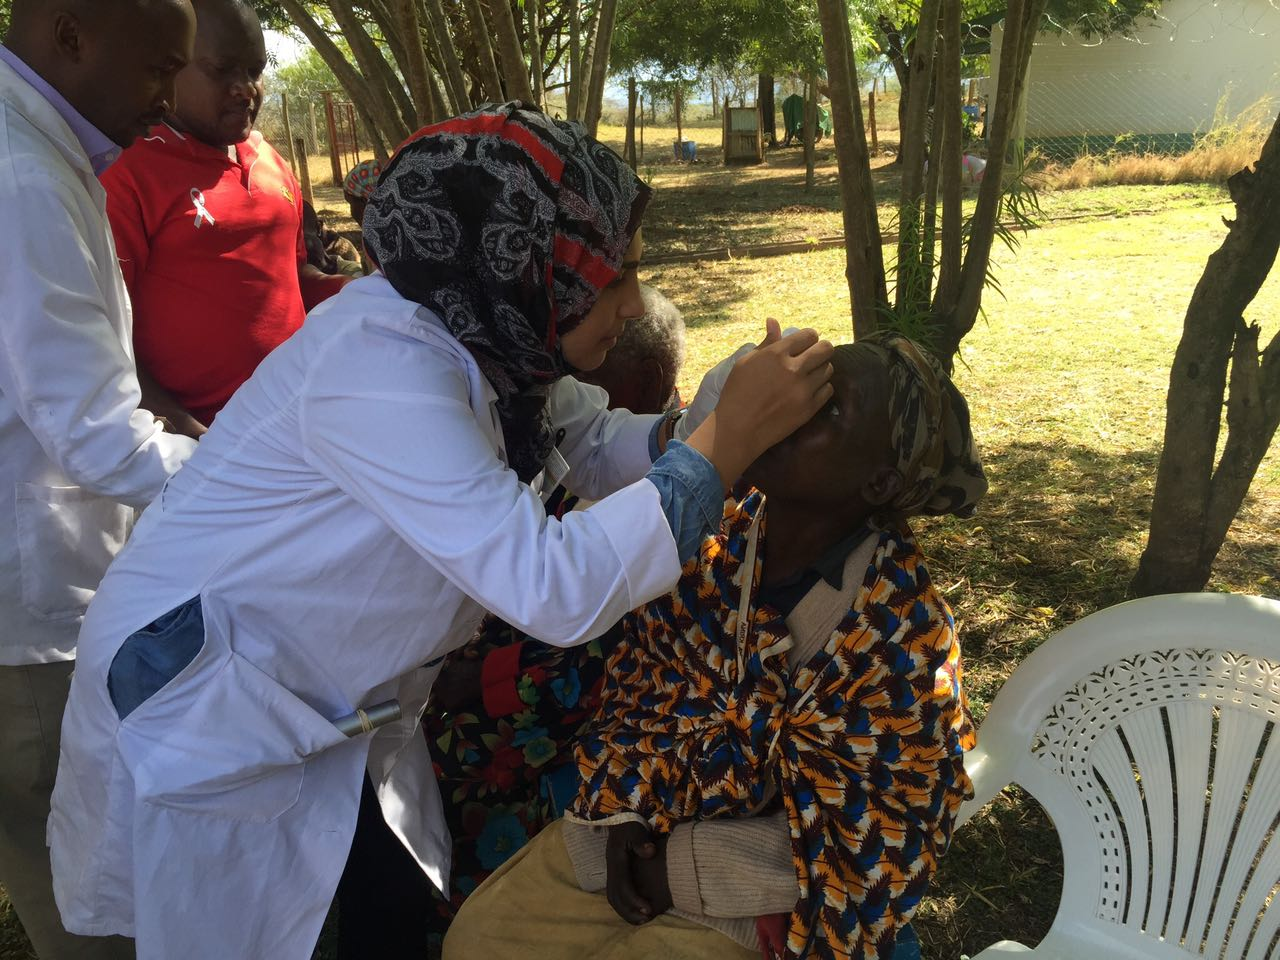 Dr. Sidiqa performing post-cataract treatment on patients in 2016 at the Isiolo Hospital